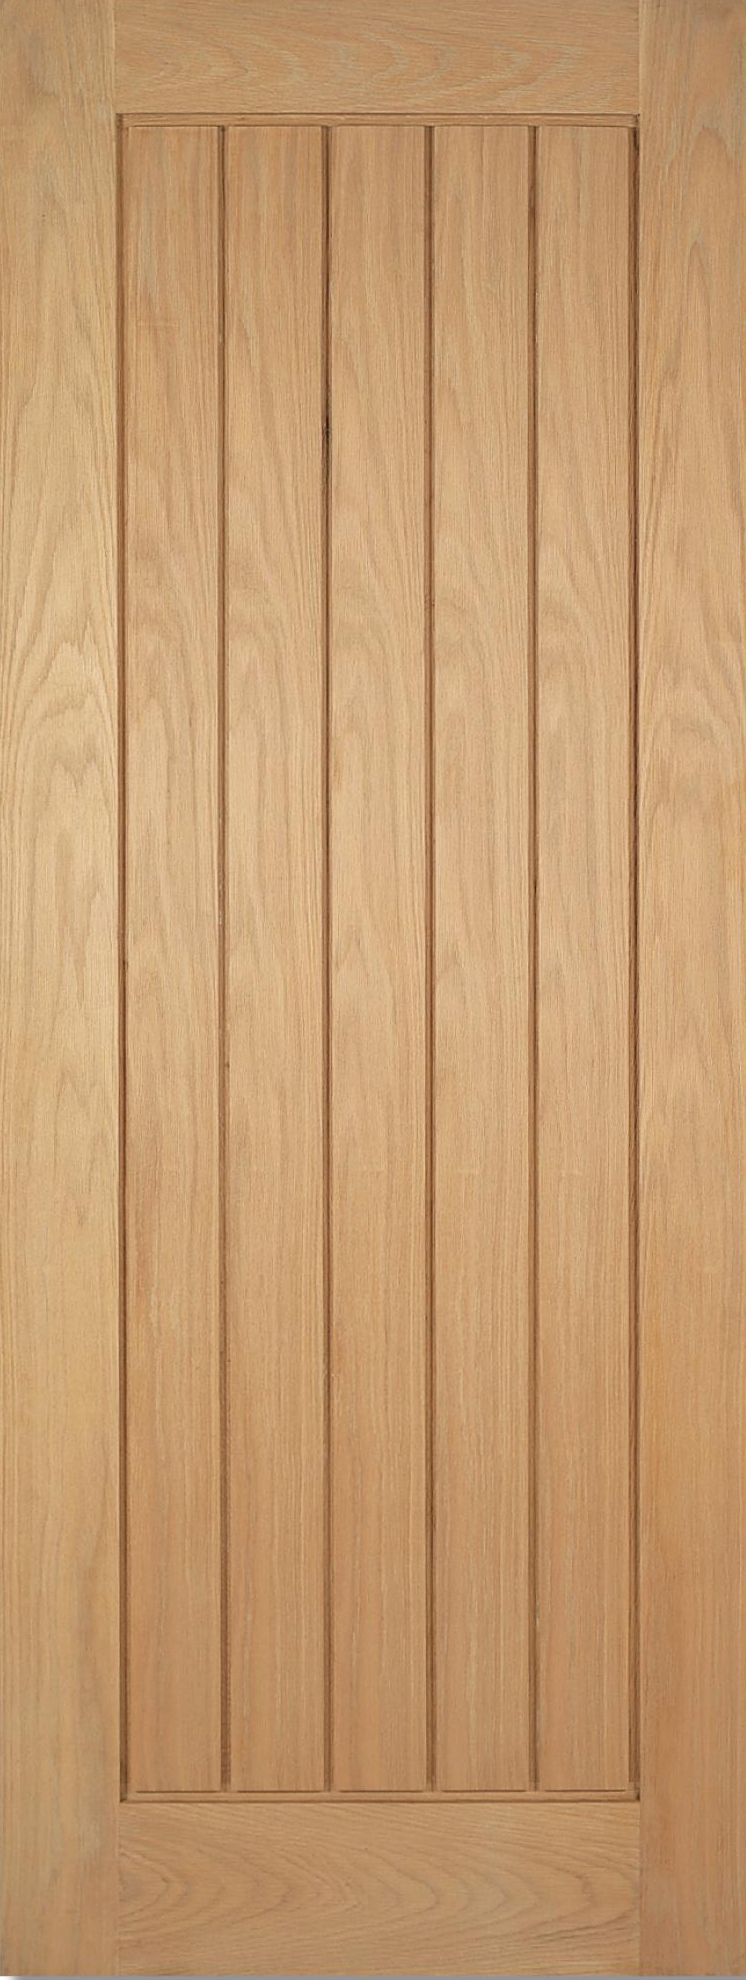 Mexicano Oak - Prefinished